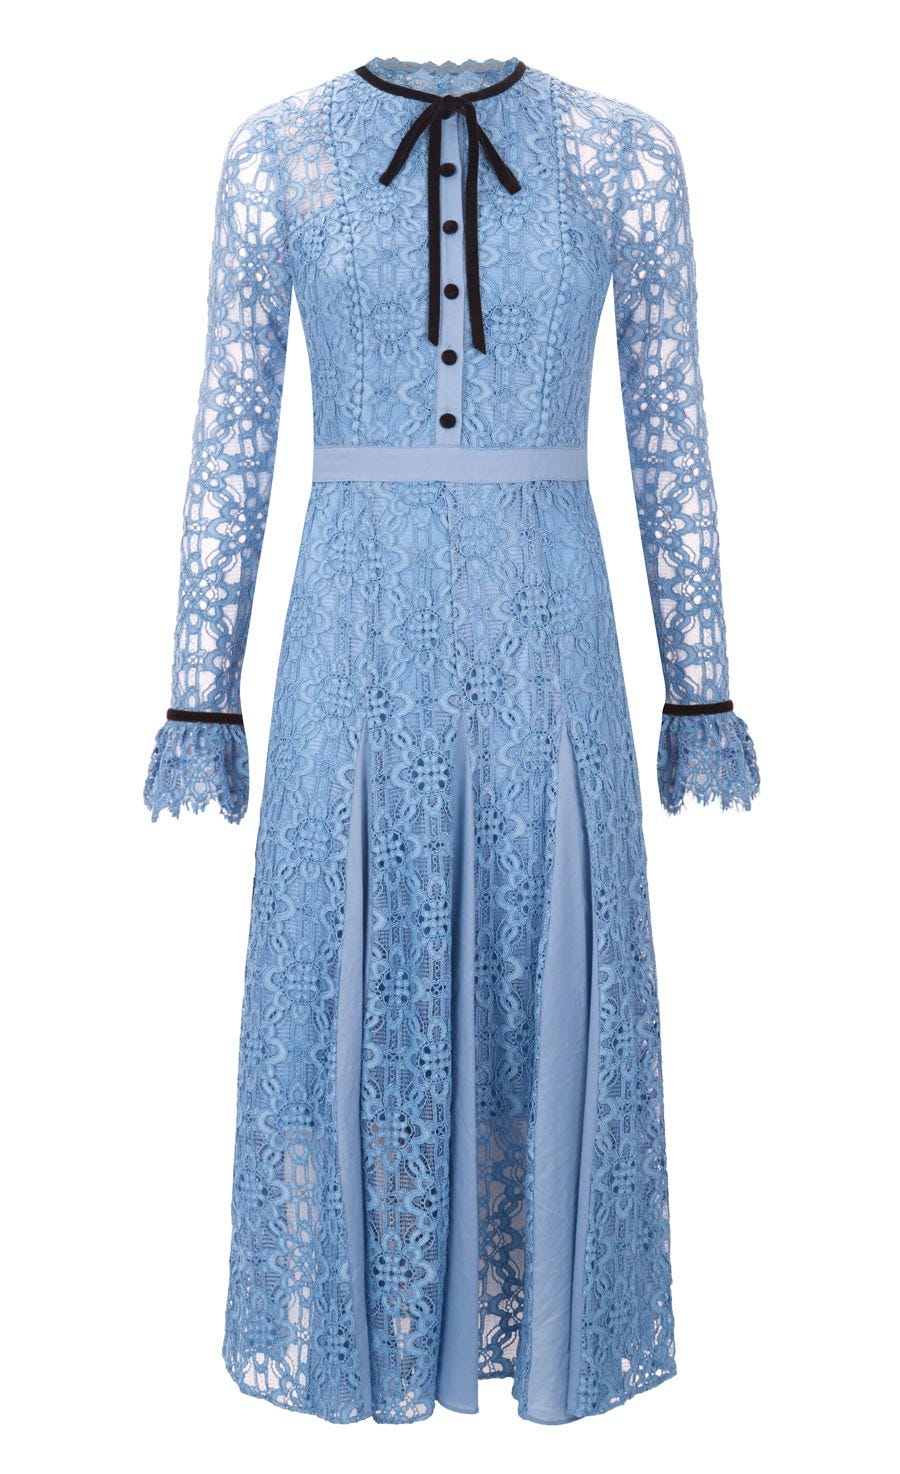 Eclipse Lace Collar Dress, Iris